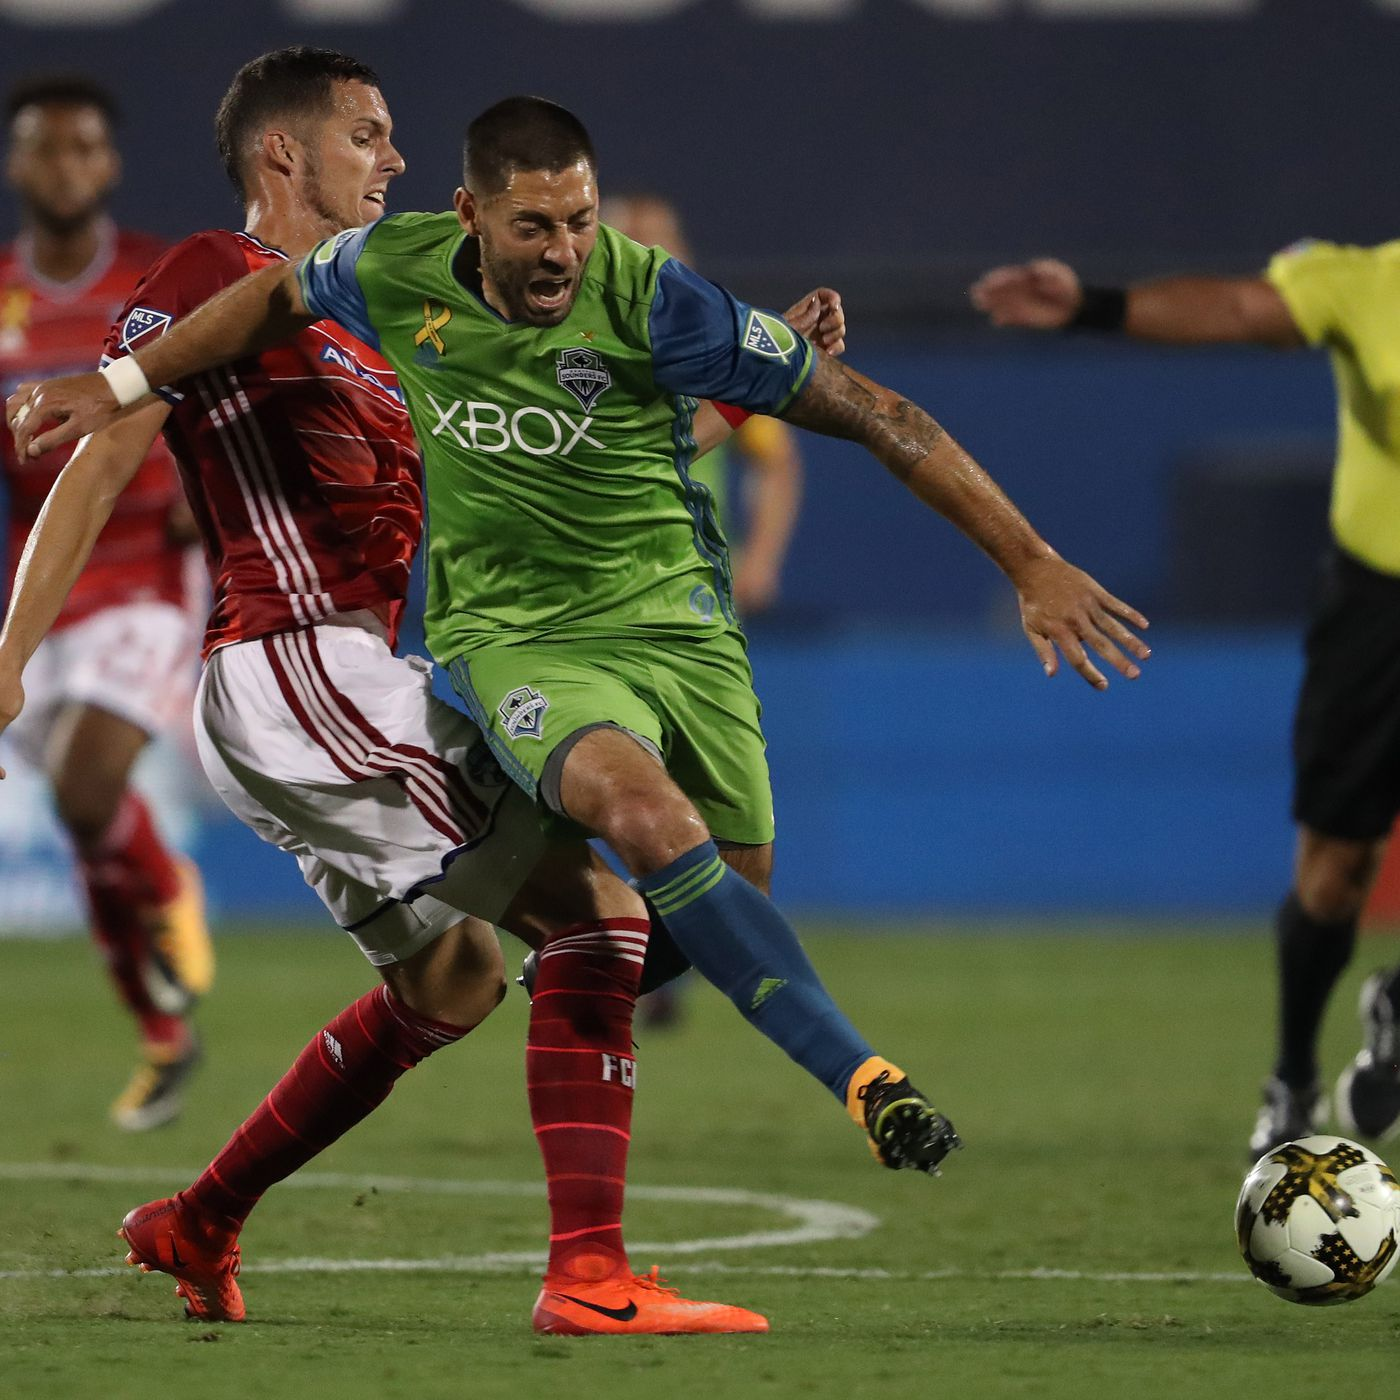 Scouting Report: One last rodeo with FC Dallas - Sounder At Heart